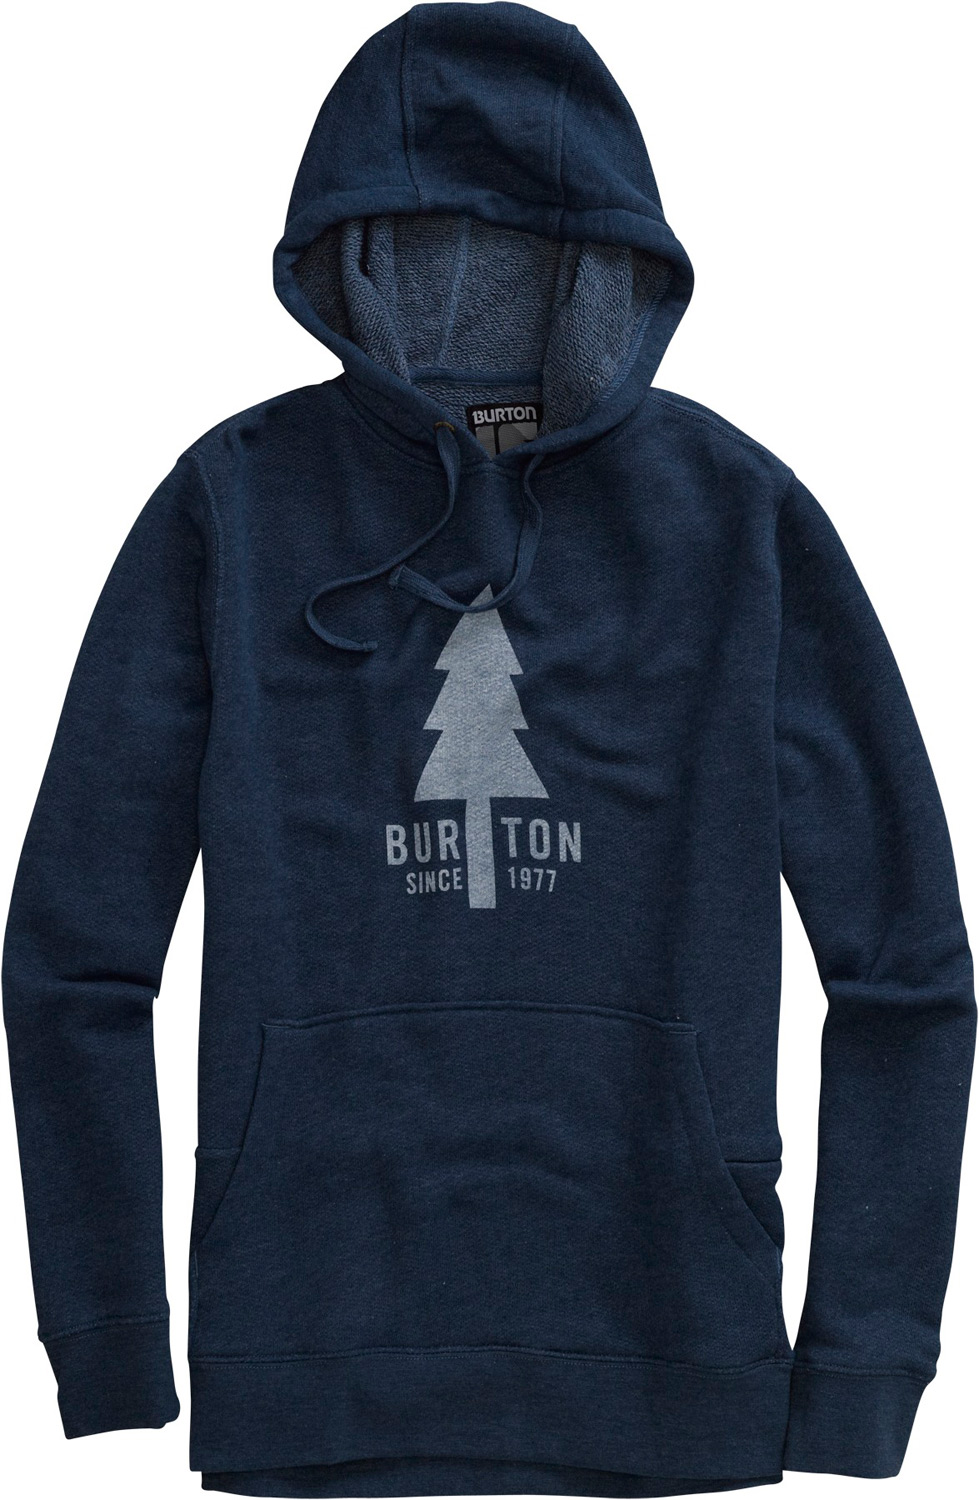 Snowboard Key Features of the Burton Old Faithful Pullover Hoodie: 80% Cotton/20% Polyester Custom Zipper Pull and Eyelids Sig Fit - $42.95